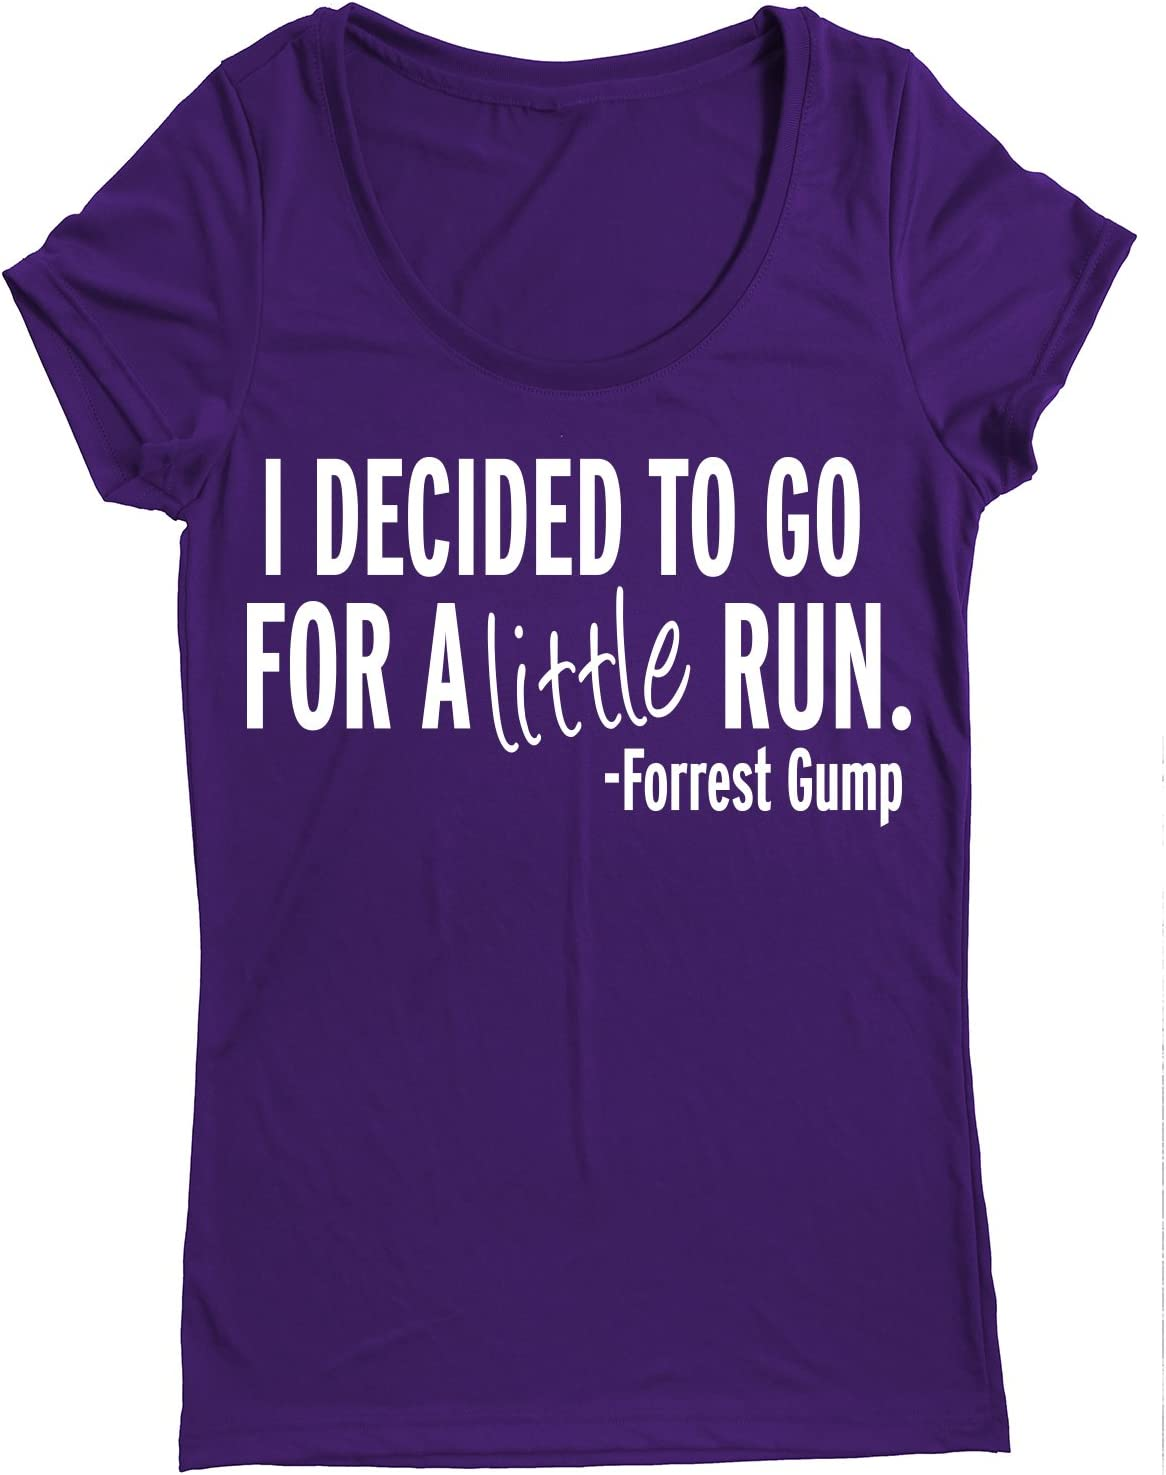 Women Running Short Sleeves top I Decided to GO for A Little Run Performance Dry Sports Shirt Forrest Gump